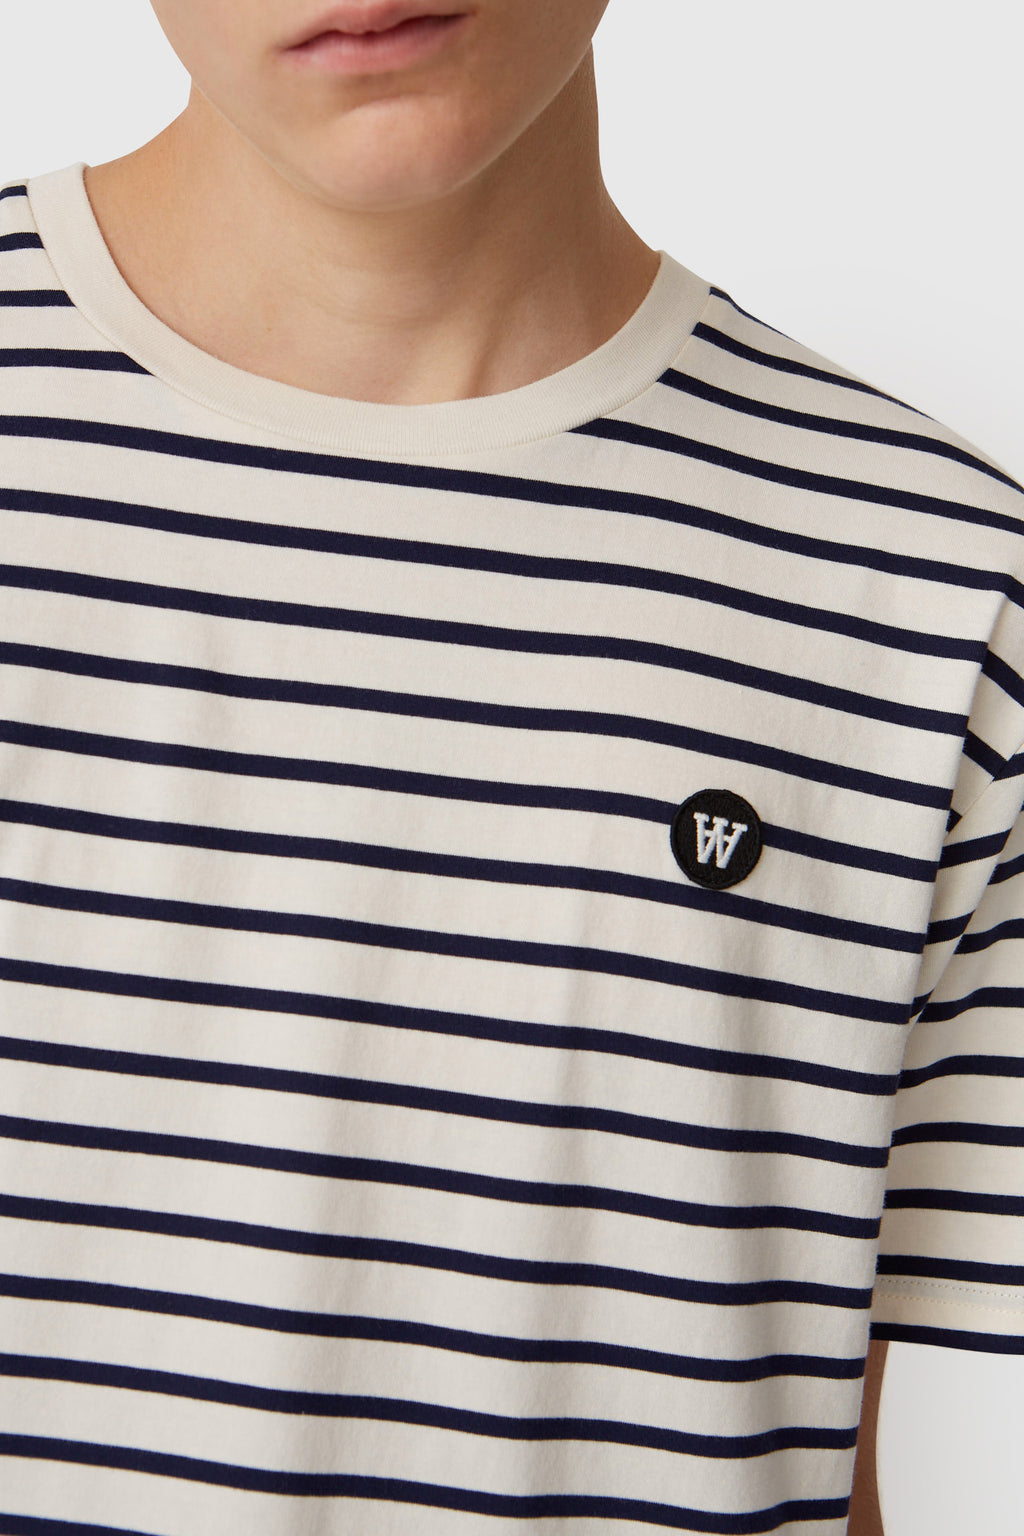 Wood Wood Ace Off White & Navy Stripe T-Shirt